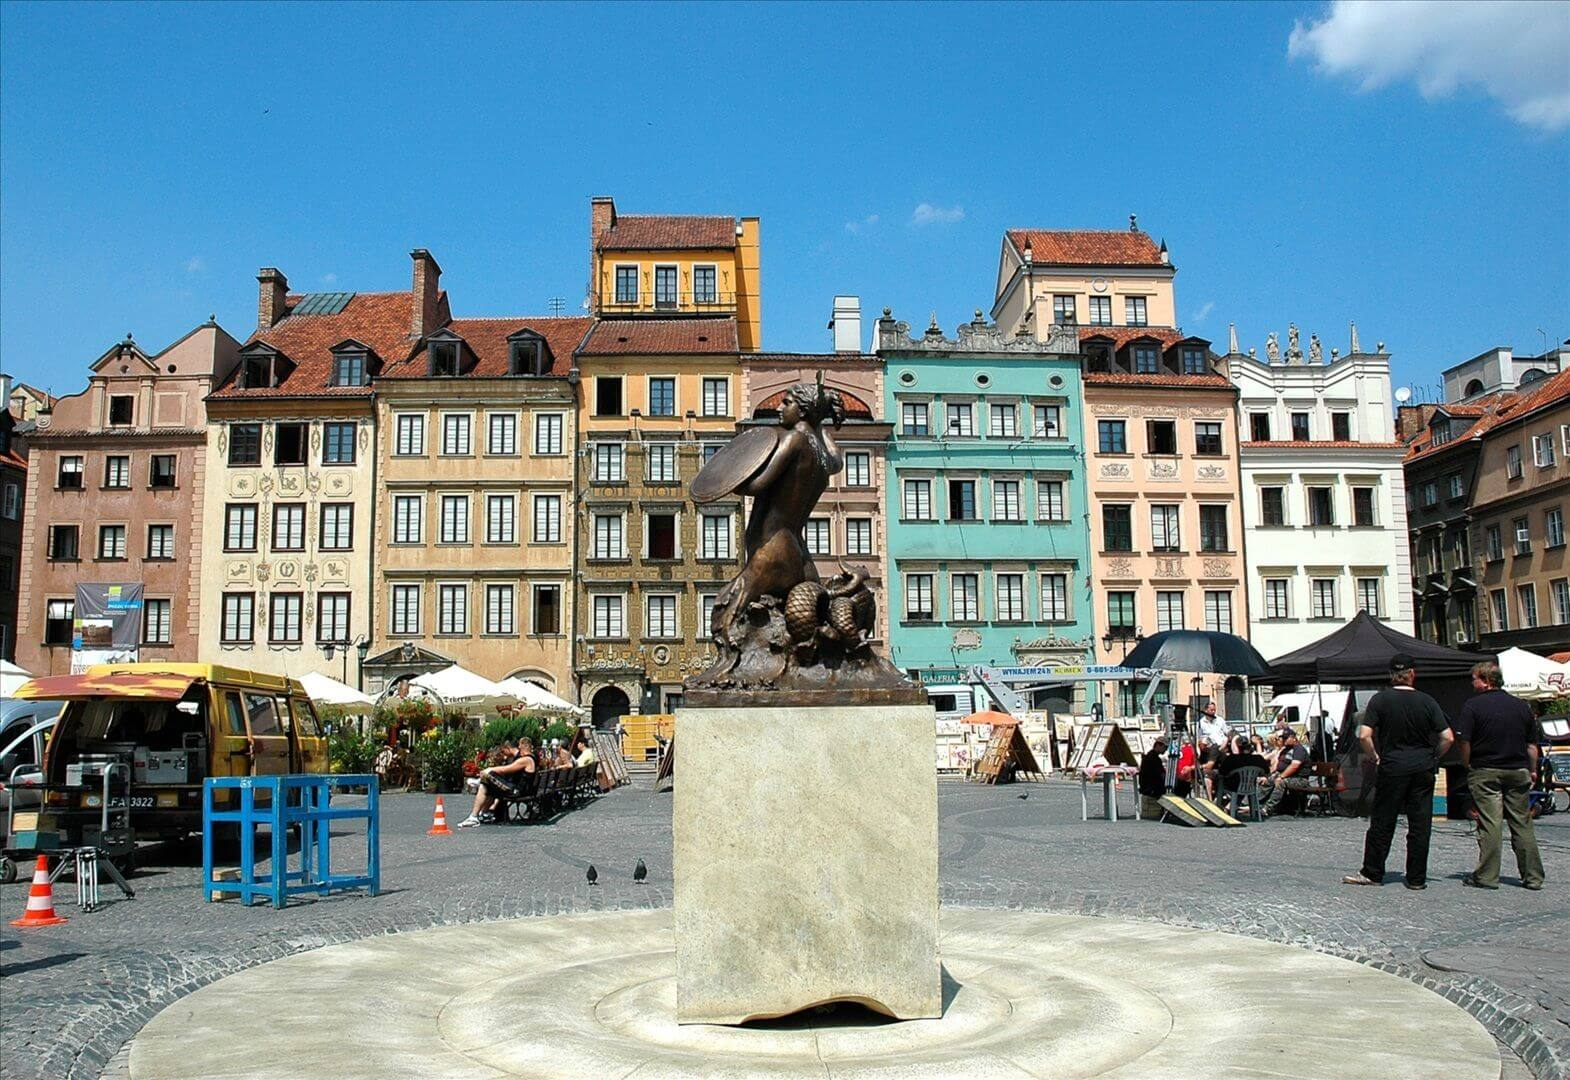 Tourist Attractions in Poland: Warsaw Old Town Market Place